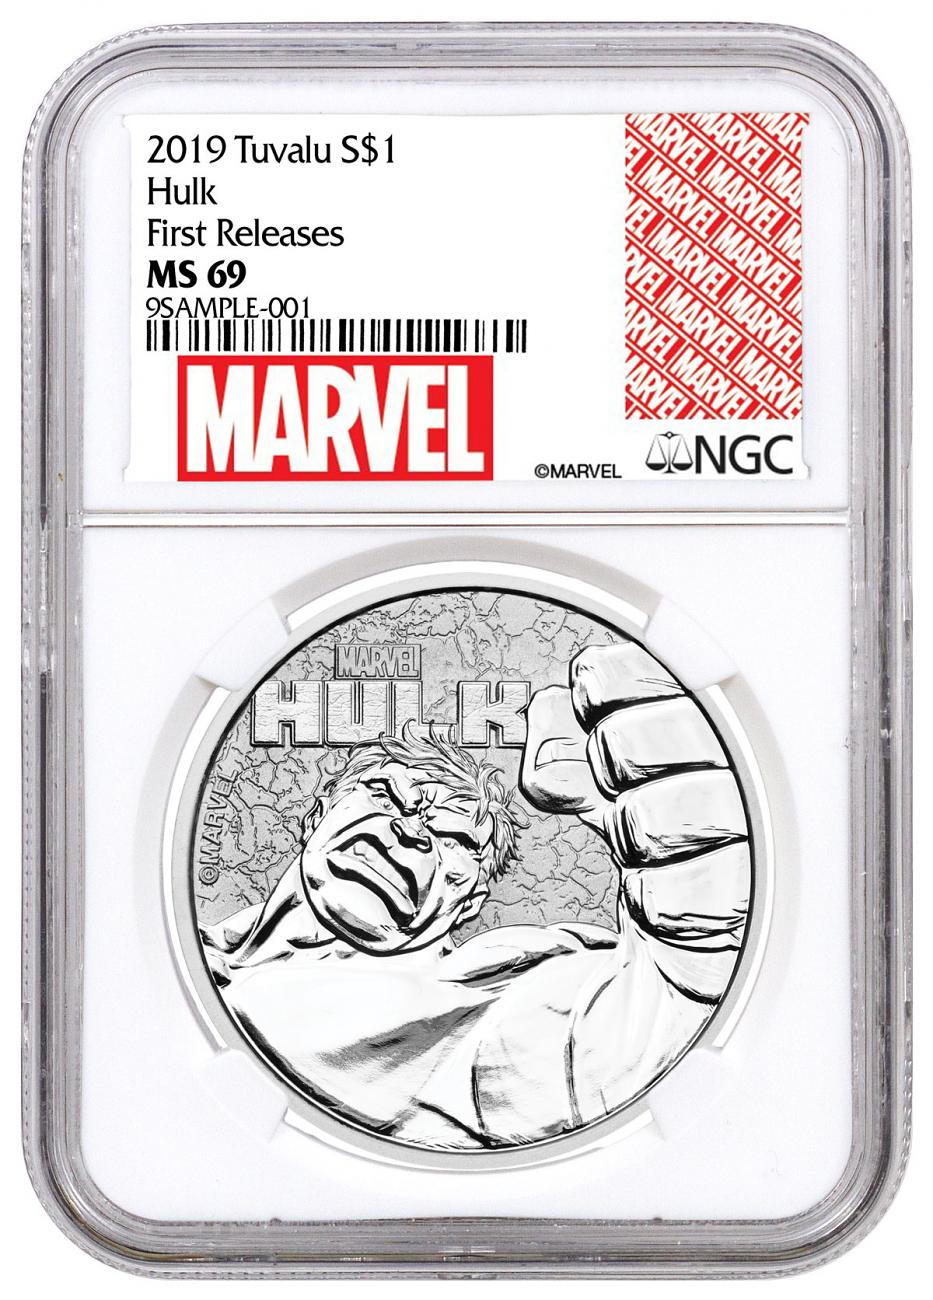 2019 Tuvalu Hulk 1 oz Silver Marvel Series $1 Coin NGC MS69 FR Marvel Series Label